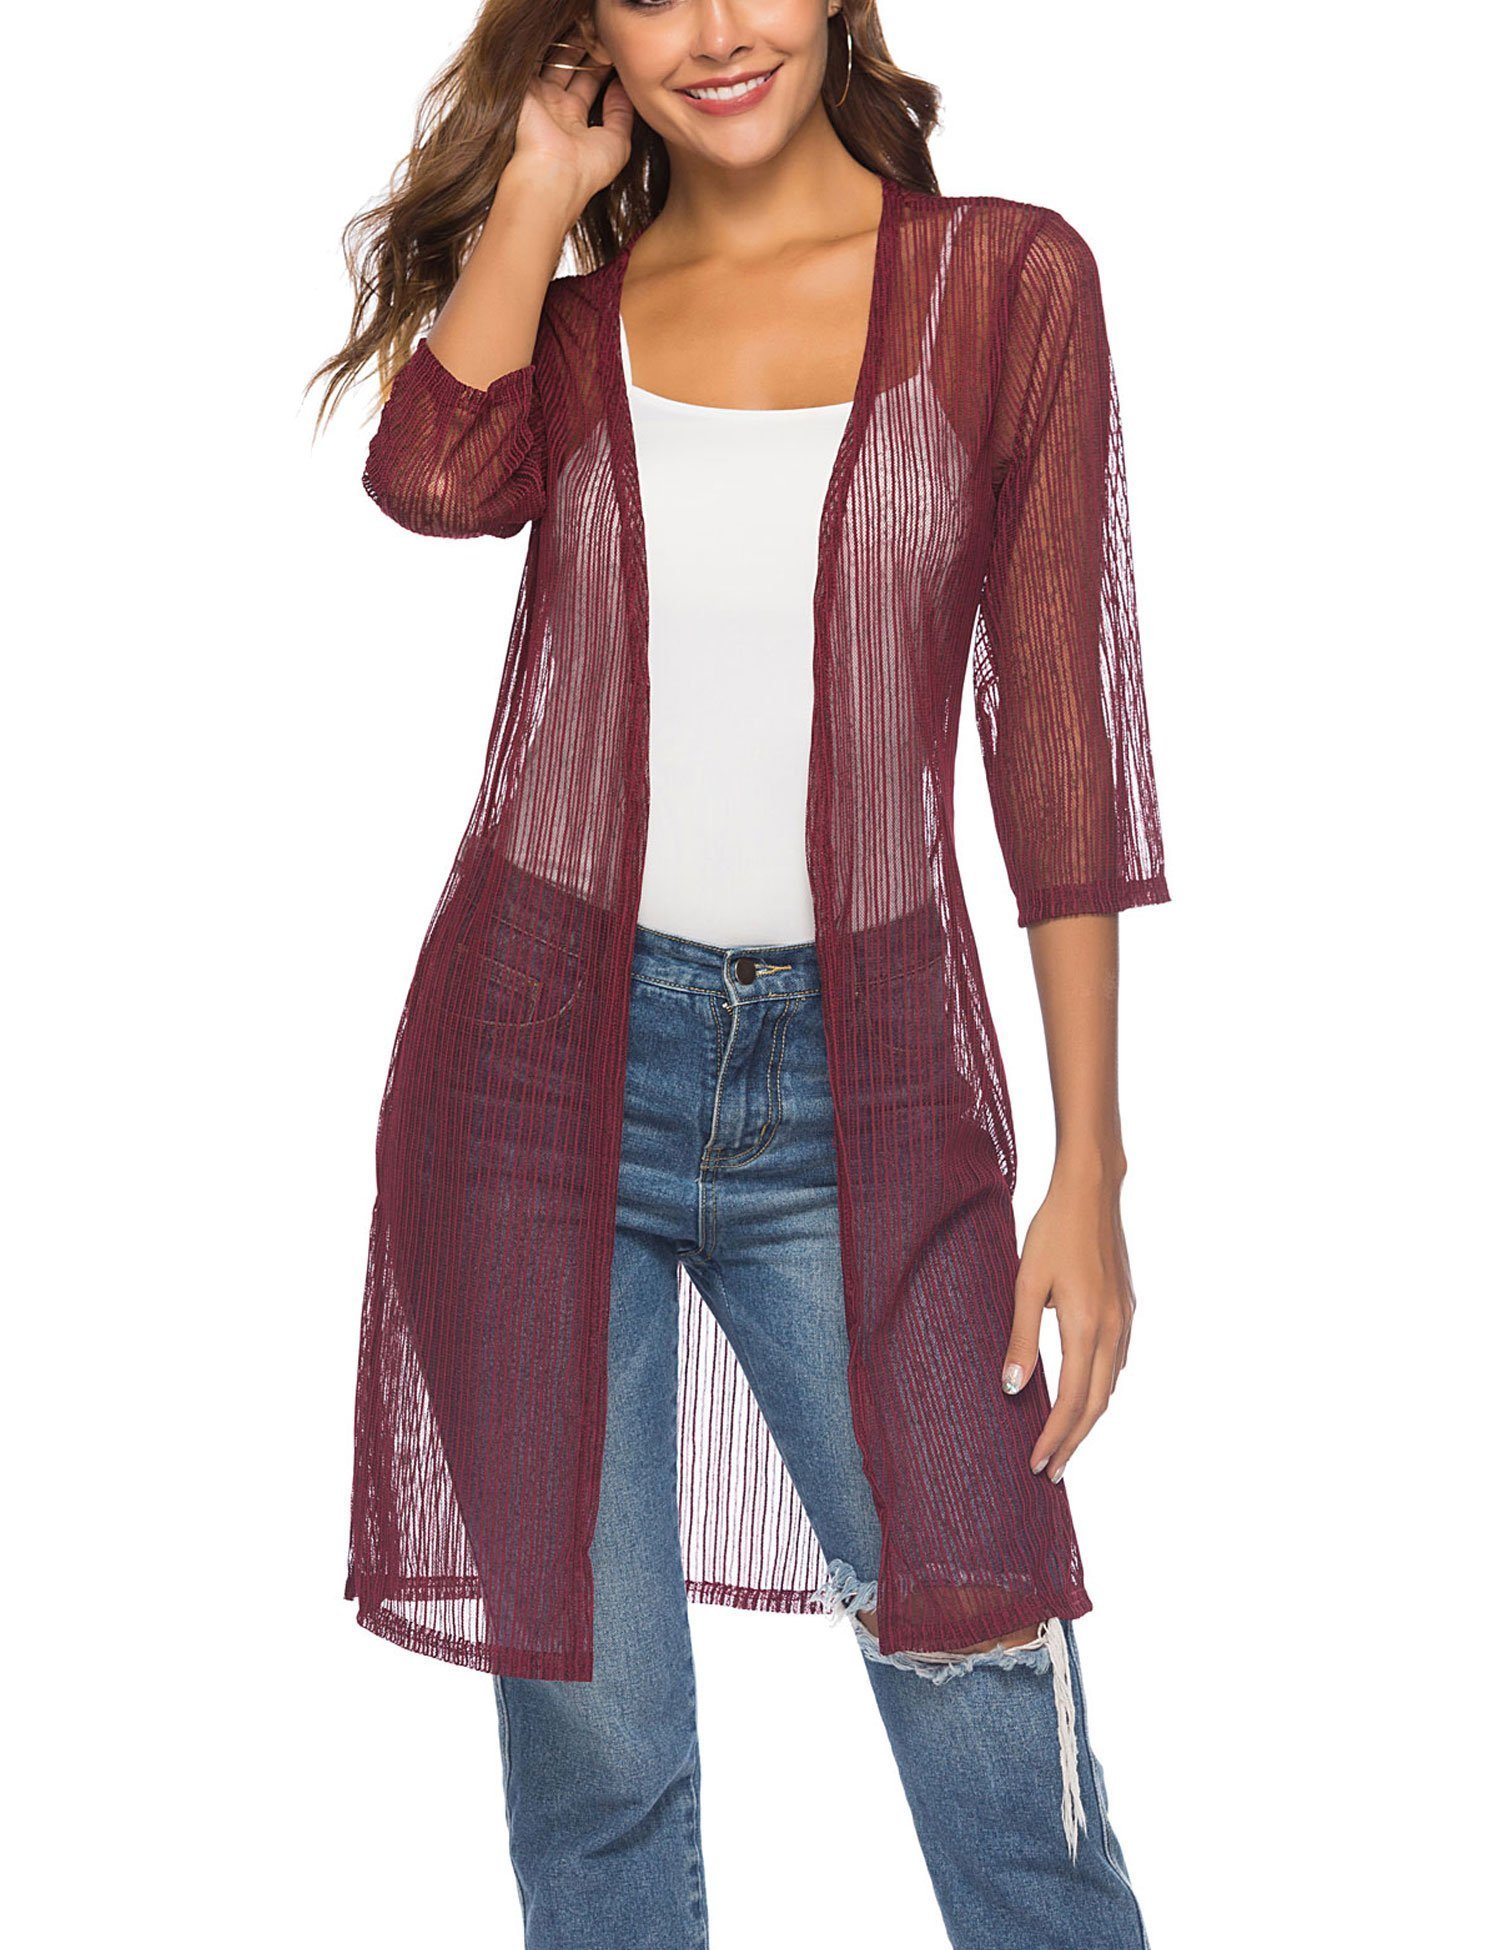 Sheroin Women's Casual Lace Crochet Cardigan 3 4 Sleeve Sheer Cover up Jacket Plus Size (Wine Red M)